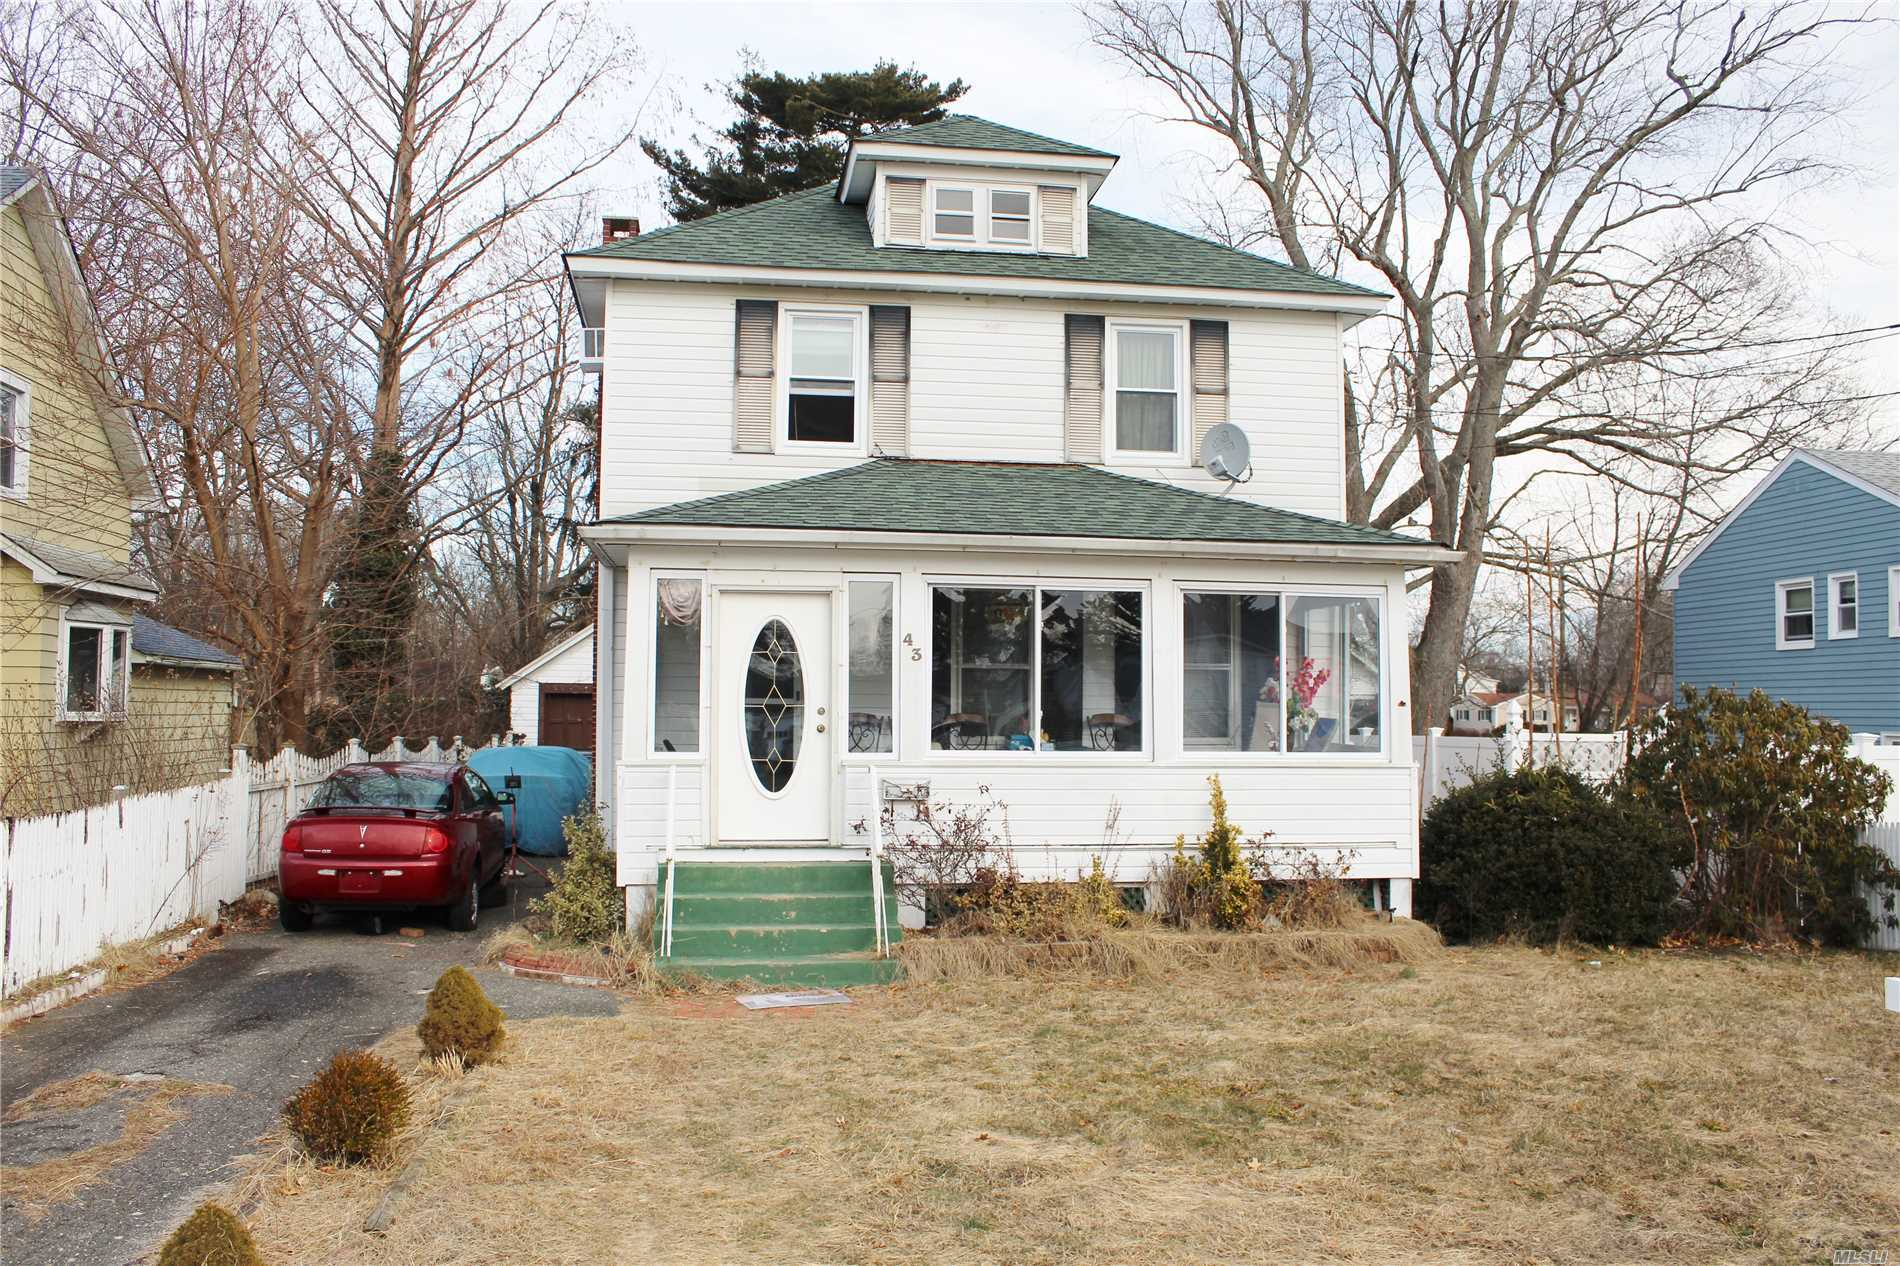 Located Outside Patchogue Village But A Short Distance Into Town This Fantastic 4 Bedroom 2.5 Bath Colonial Home Has Low Taxes But Plenty Of Space. Many Updates In The Past 5 Years Including Roof, Windows, Tile Work In The Bathrooms, New Gas Heat And Hot Water, Porch Enclosure And More. This House Has Charm And Character Which You Can Add Some Finishes Too Turn It Into Your Own Personal Paradise